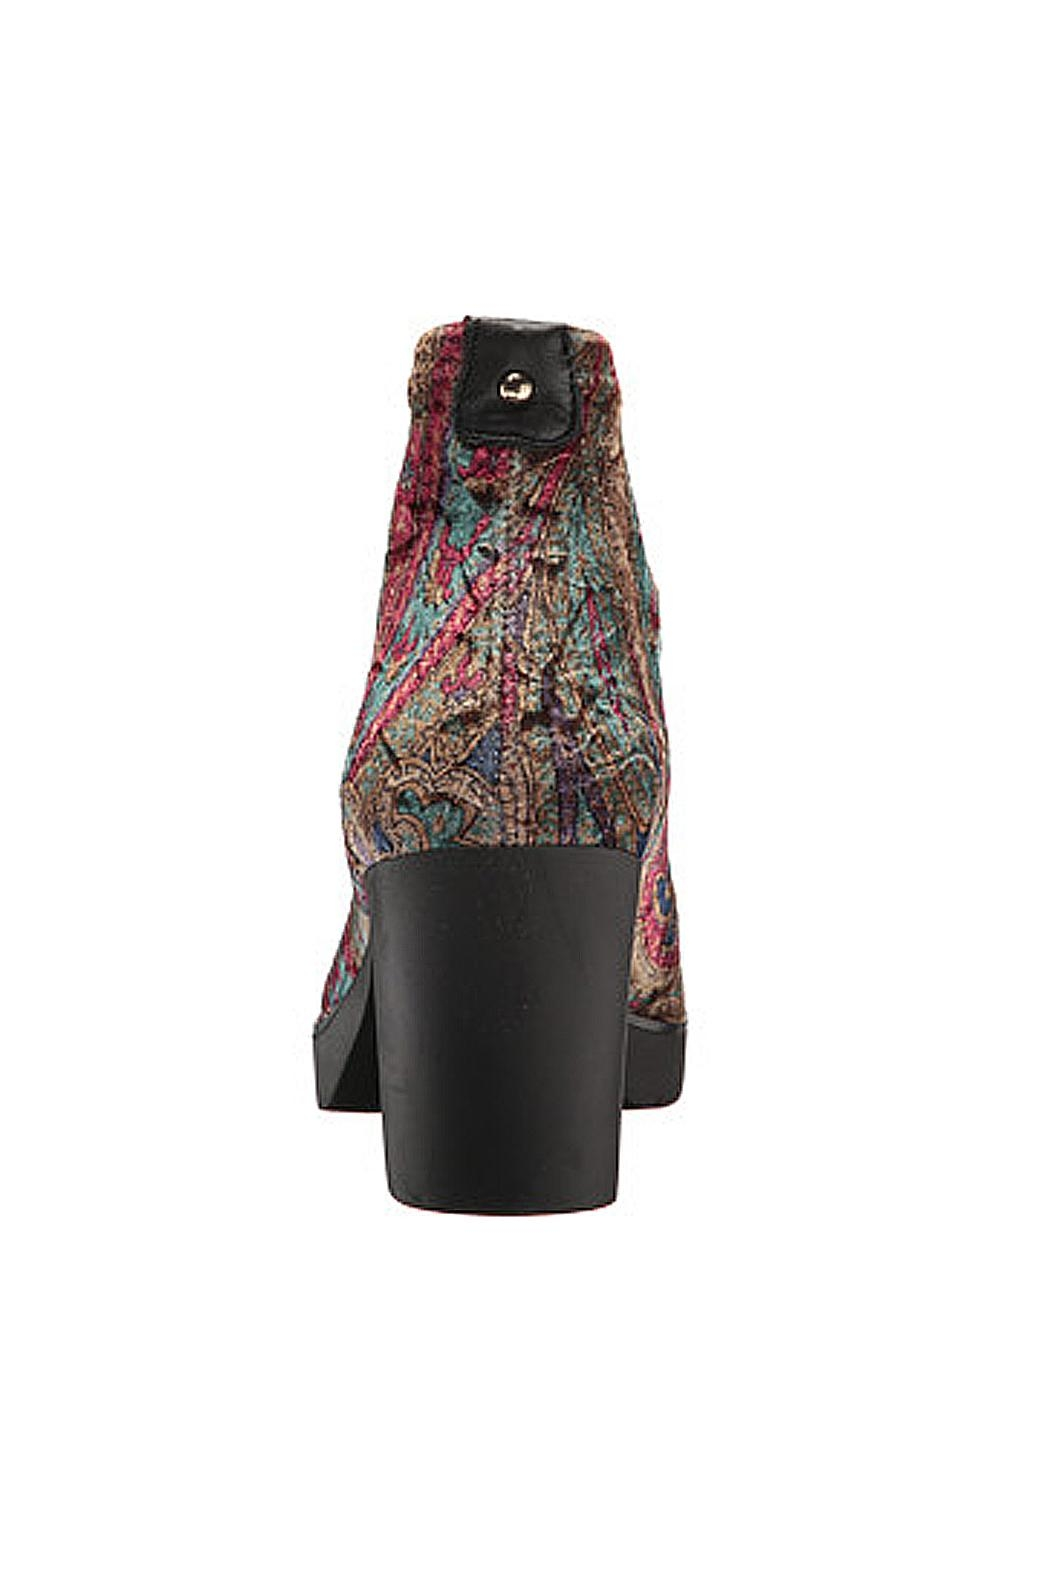 Toni Pons Finley Paisley Bootie - Side Cropped Image